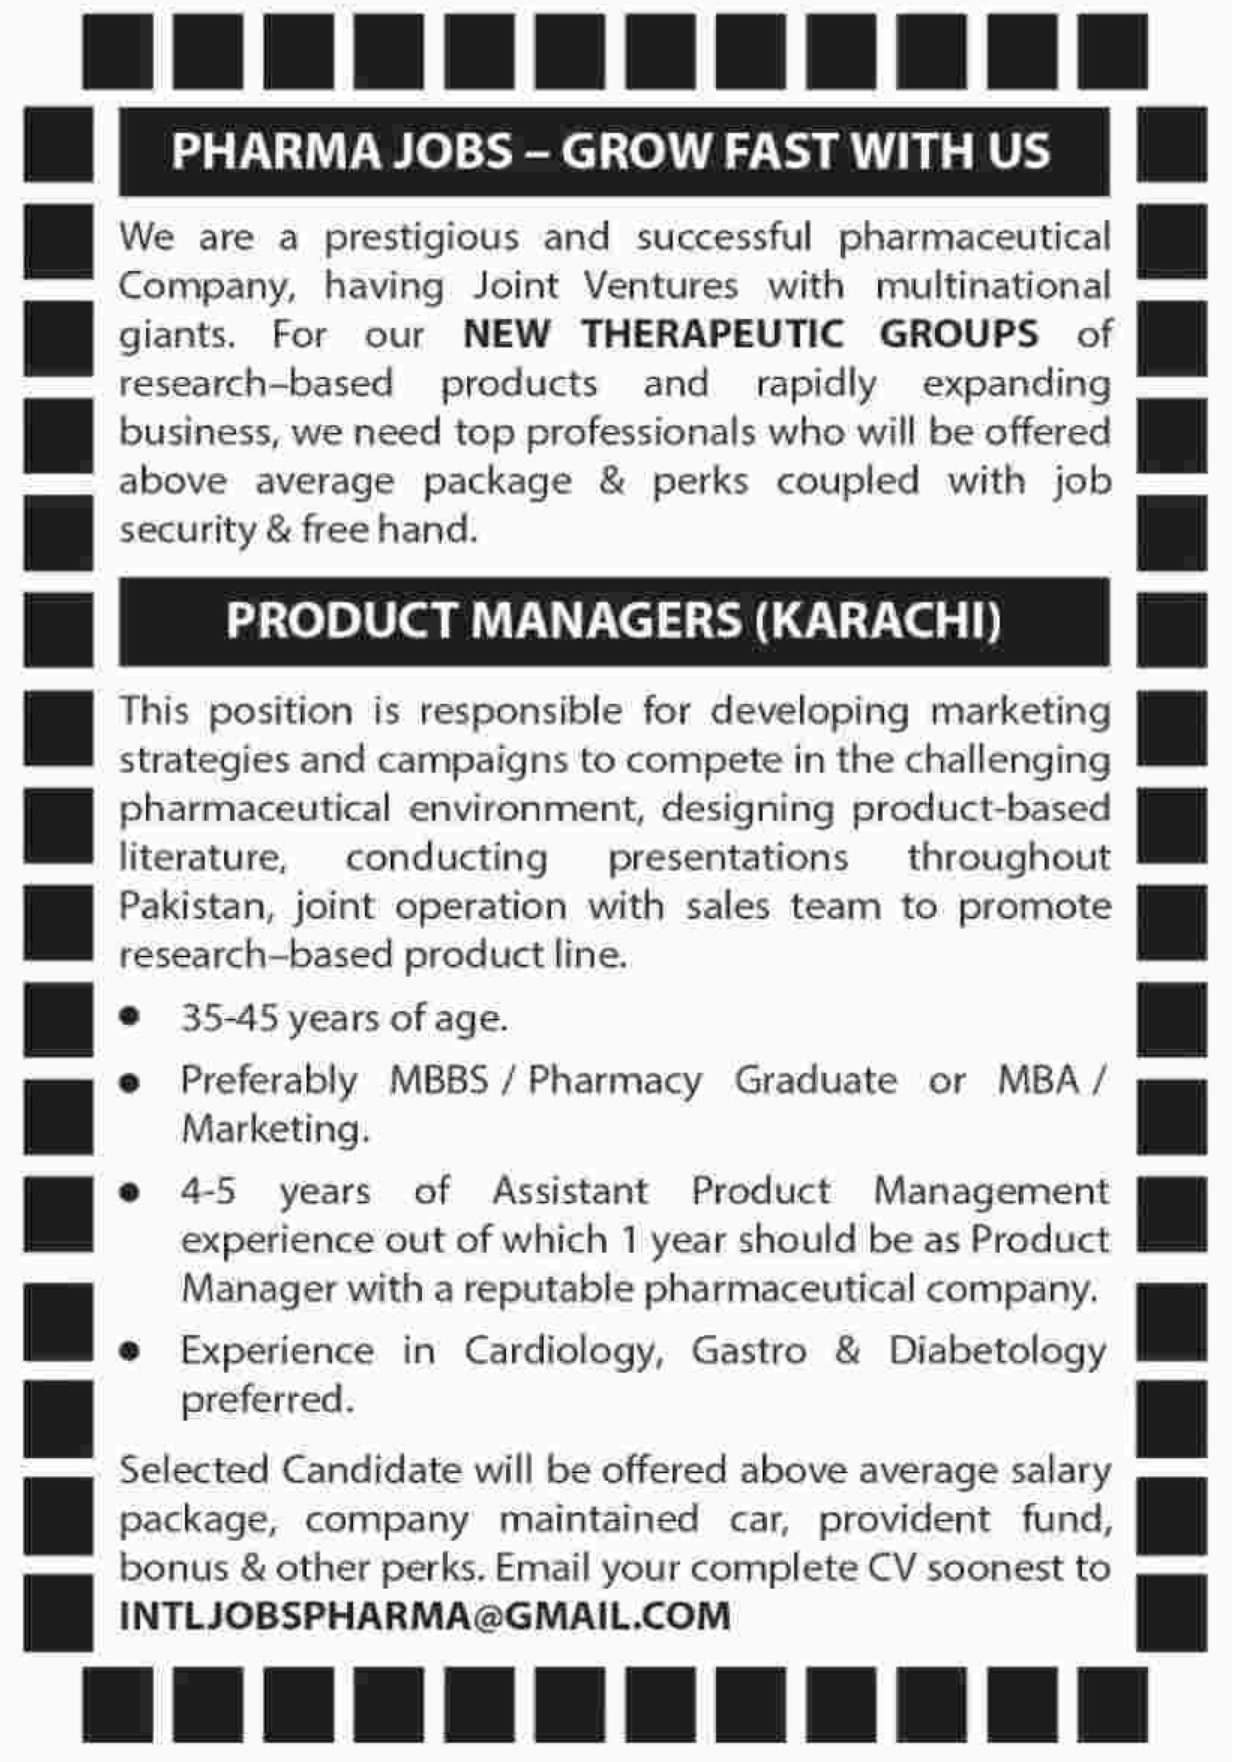 New Therapeutic Groups Product Manager Jobs 2019